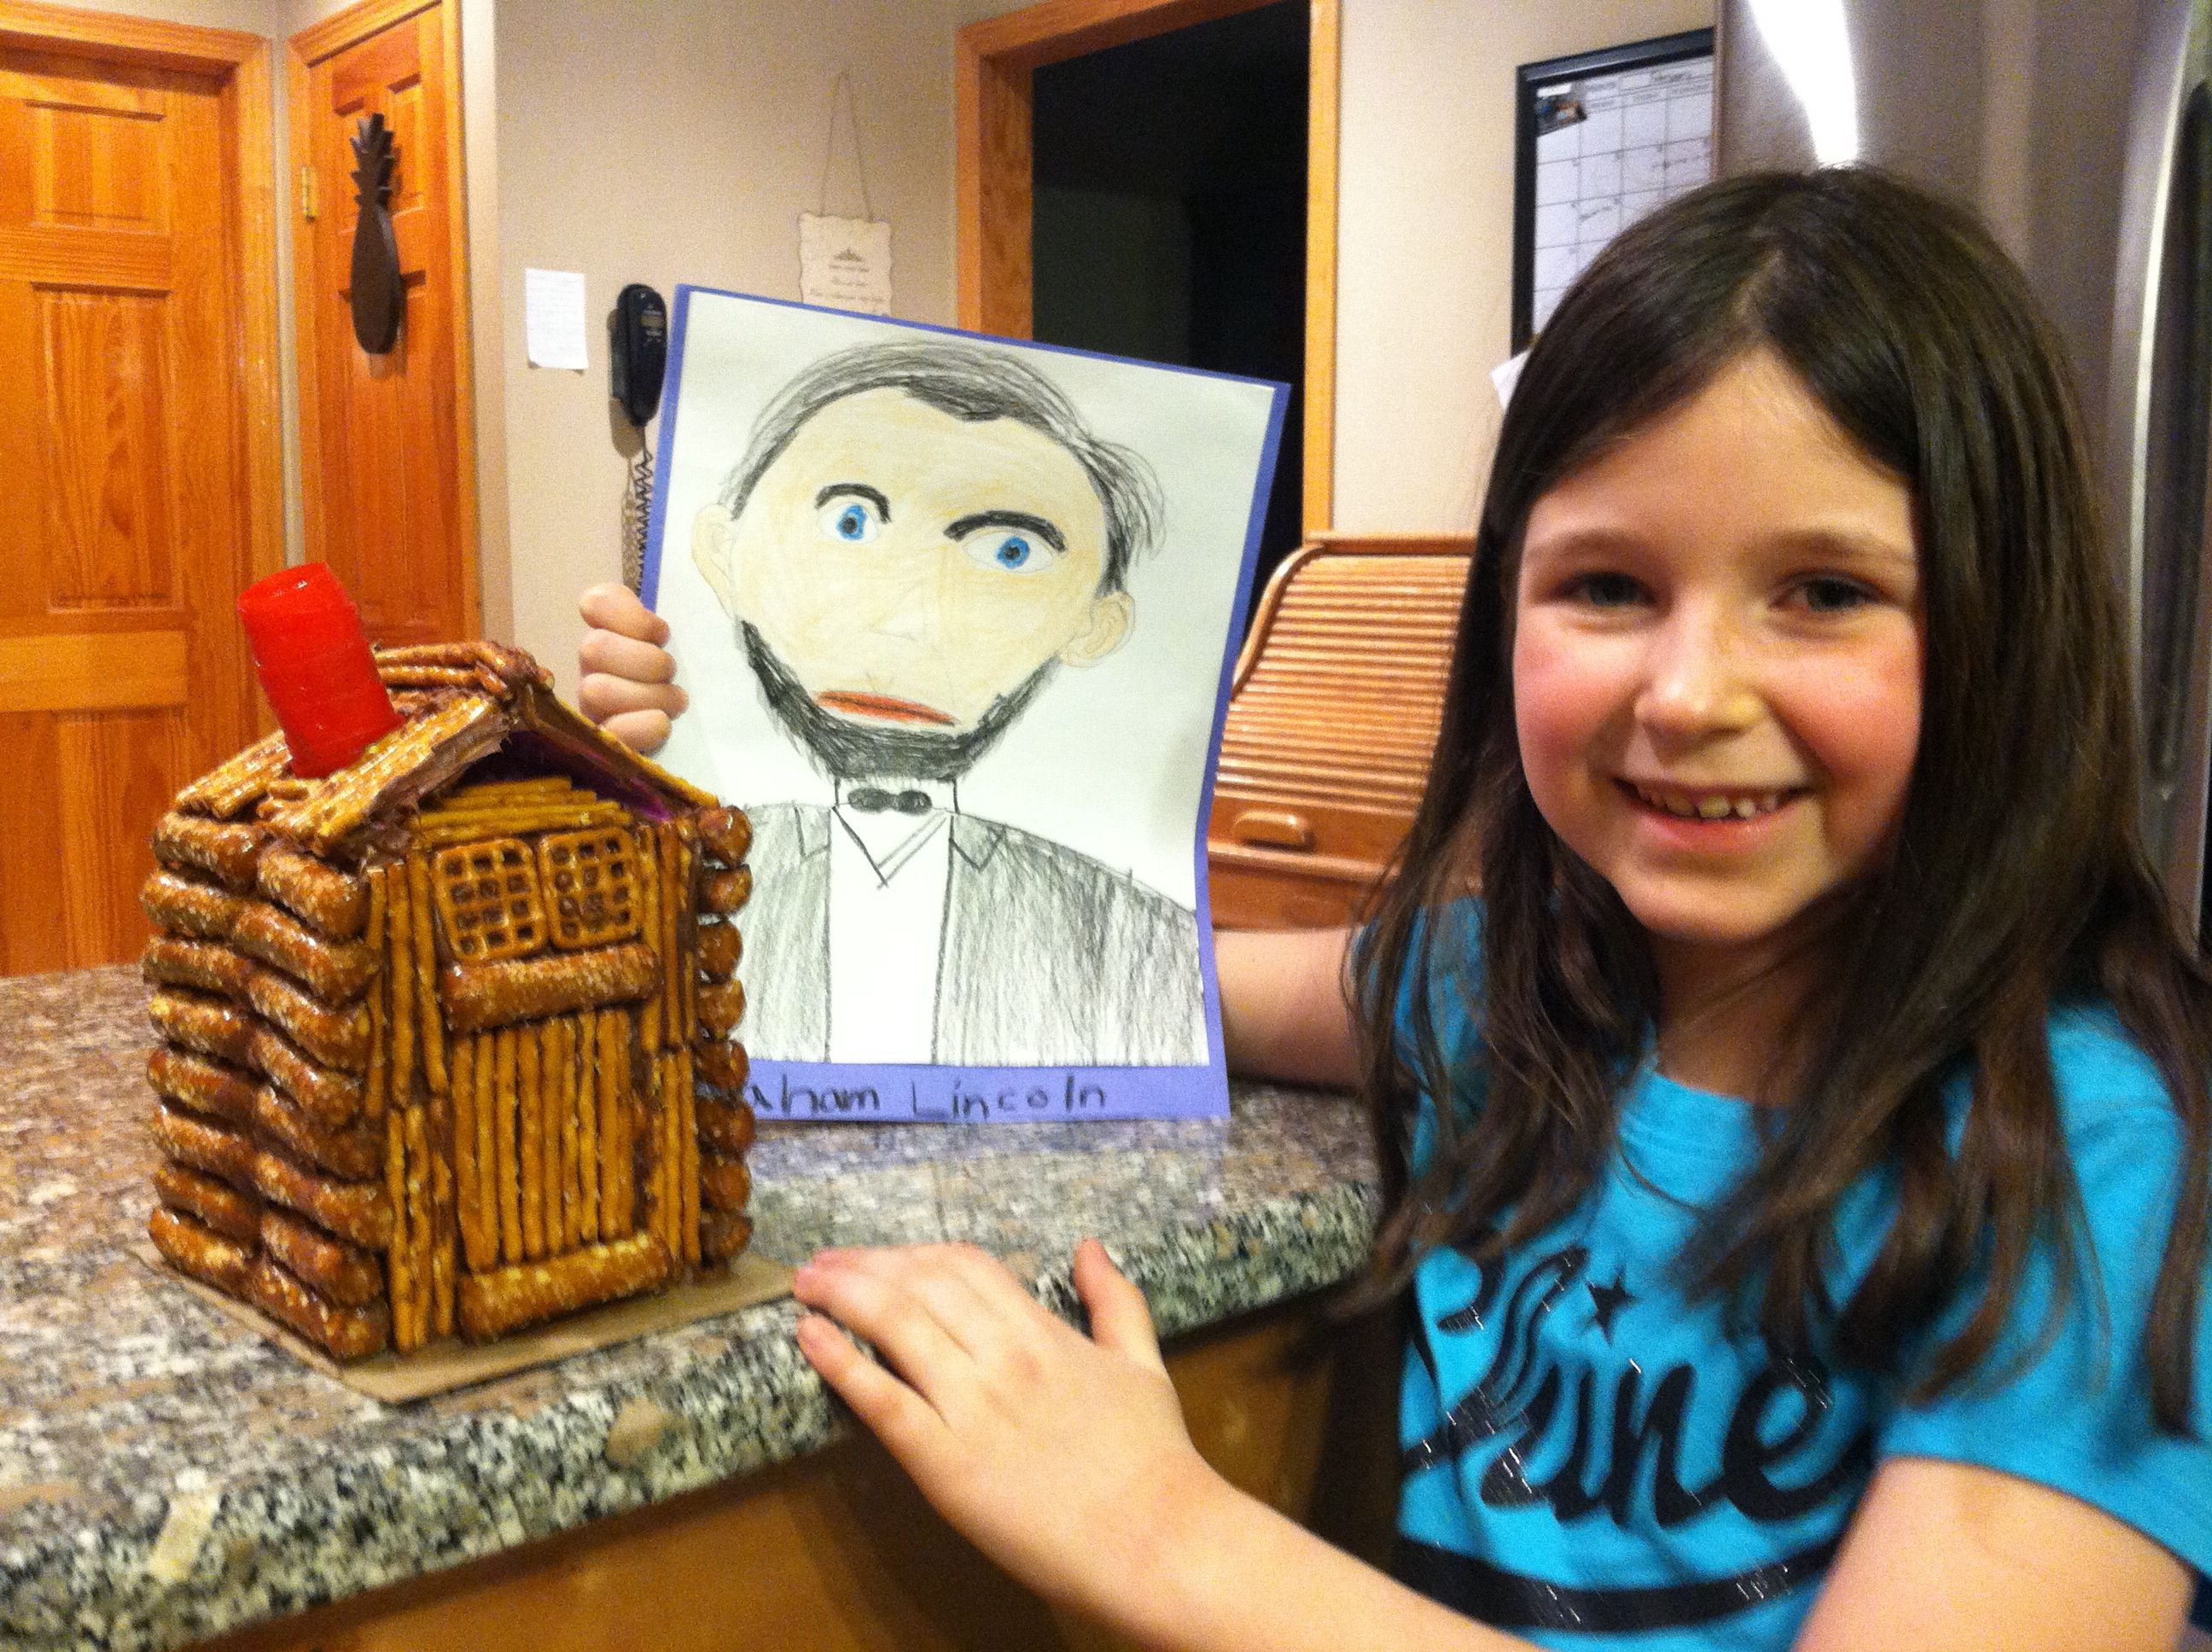 Abraham Lincoln 2nd Grade Project Projects For Kids Projects Kids [ 1936 x 2592 Pixel ]